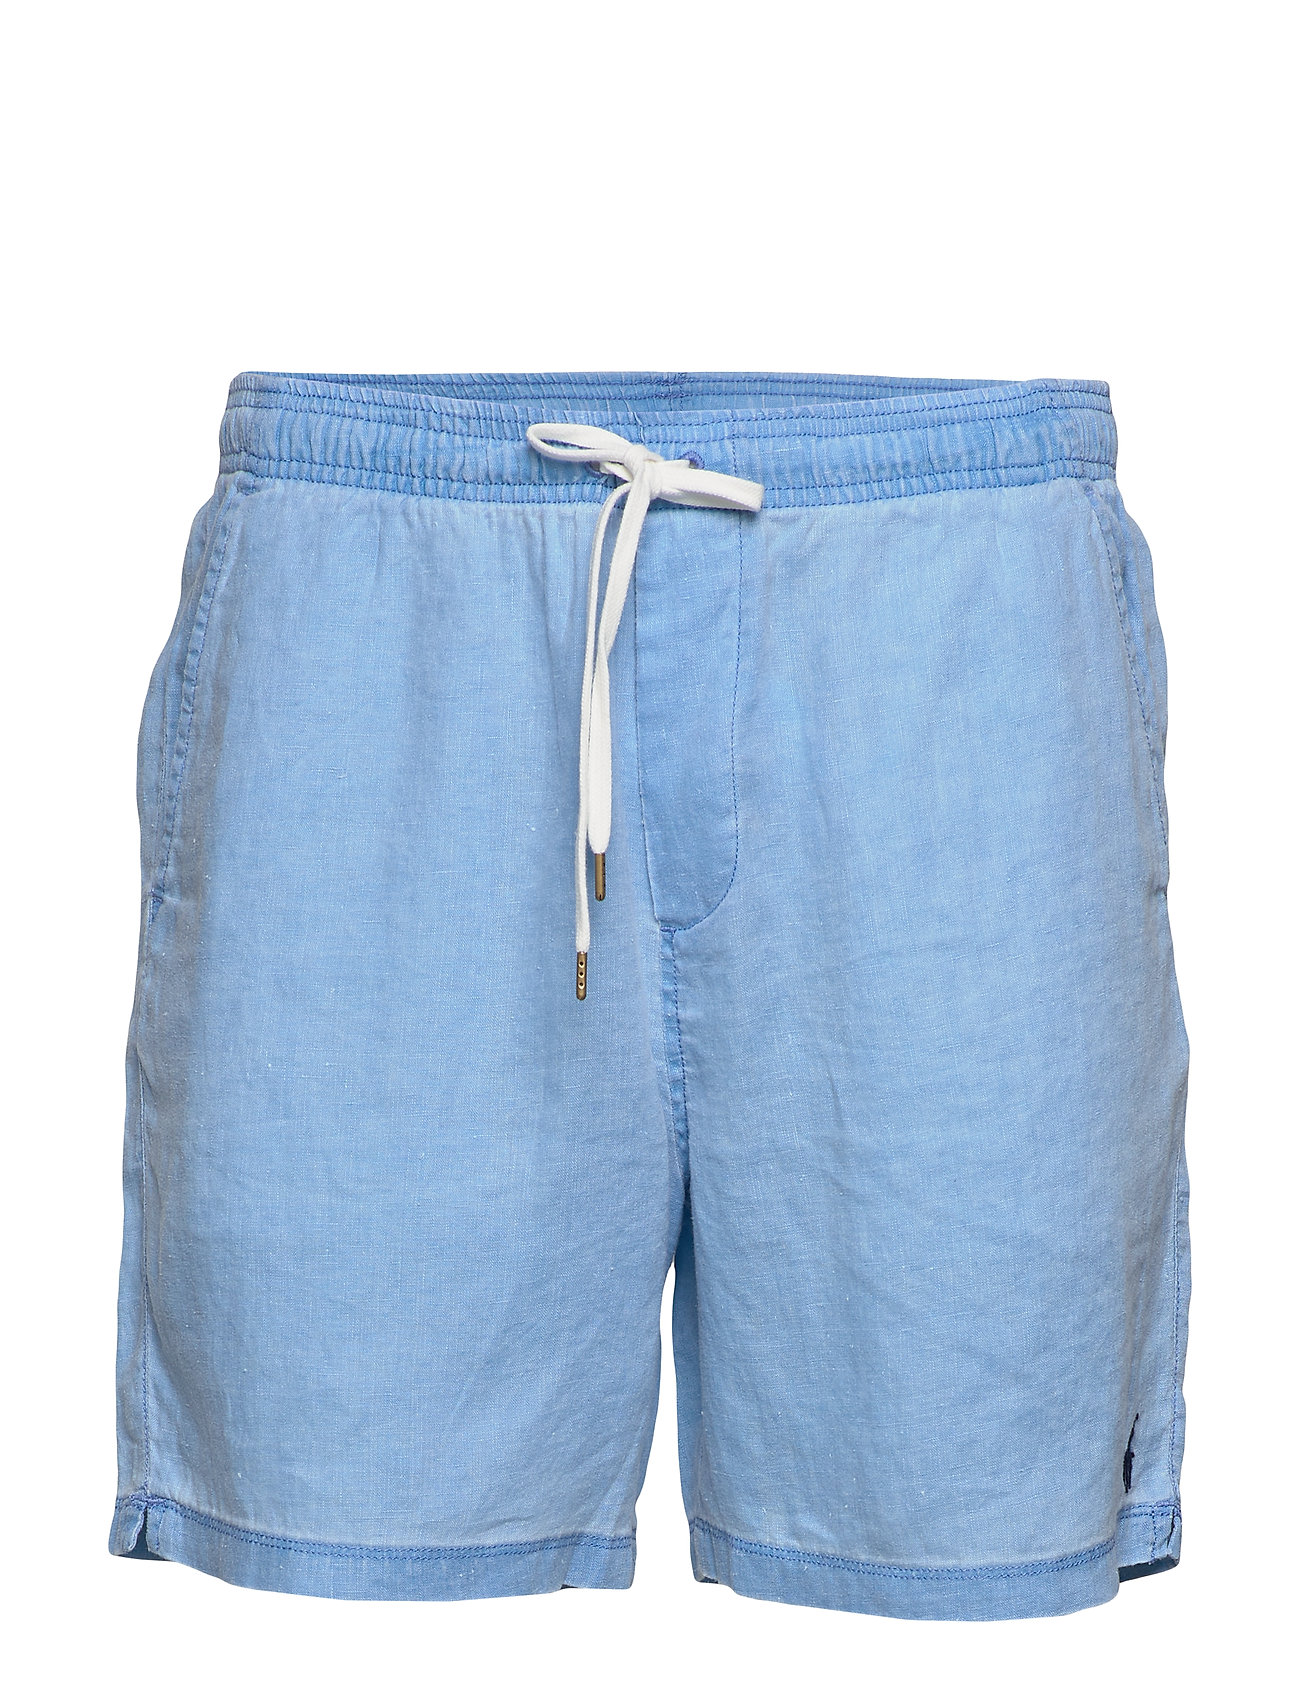 Polo Ralph Lauren RELAXED FIT GRADUATE SHORT - CHAMBRAY